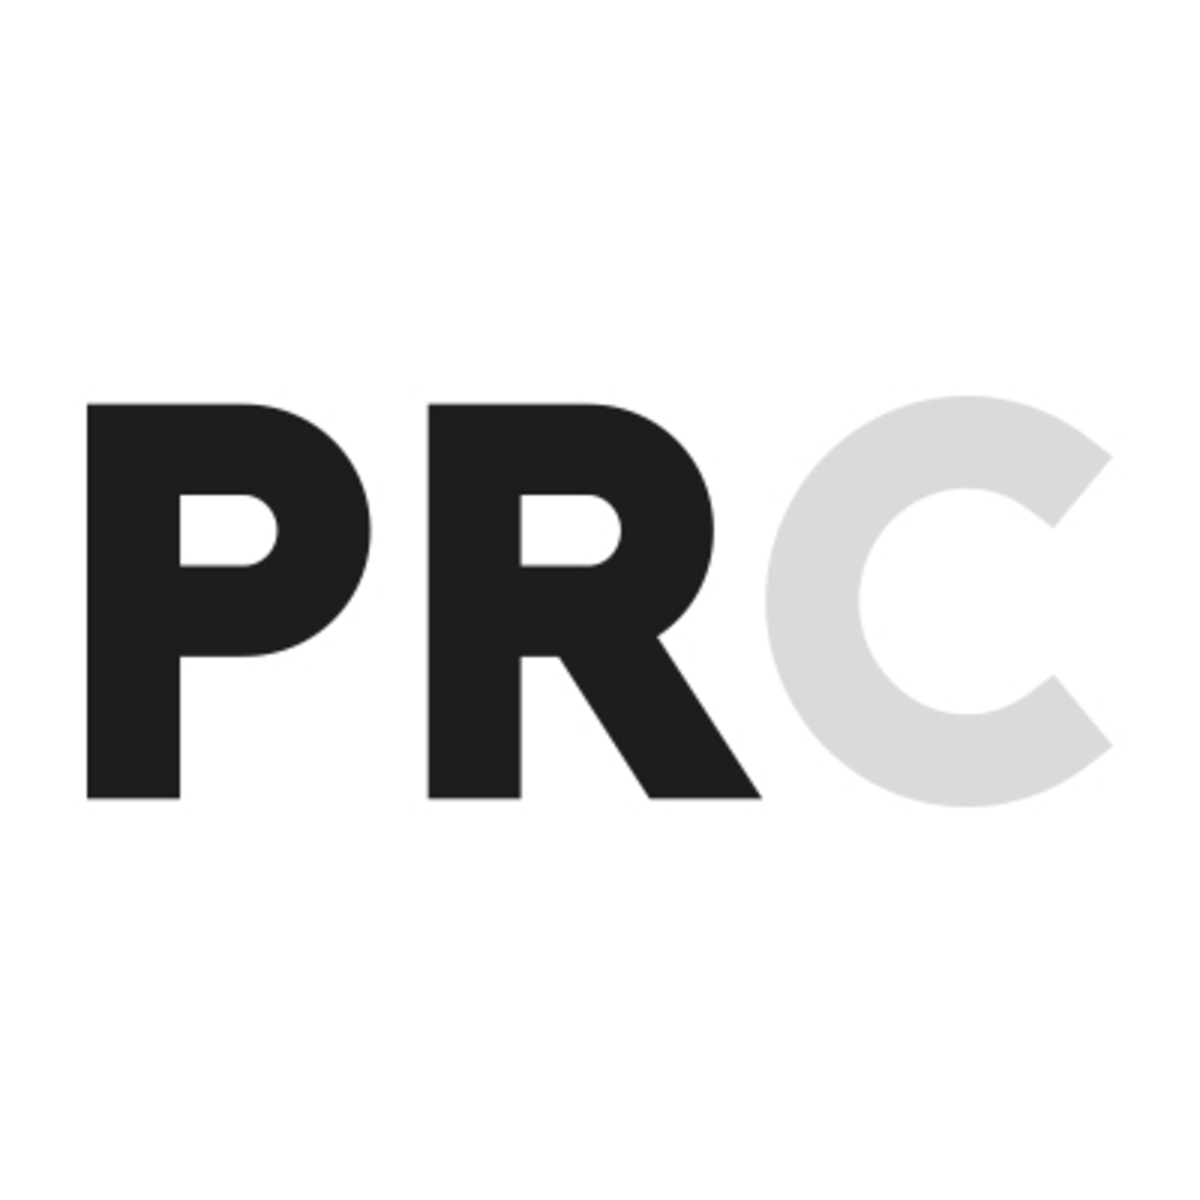 Pr Consulting A Powerhouse Public Relations Agency Known In Nyc Paris And Los Angeles For Its Beauty Fashion Lifestyle Clients Is Actively Seeking